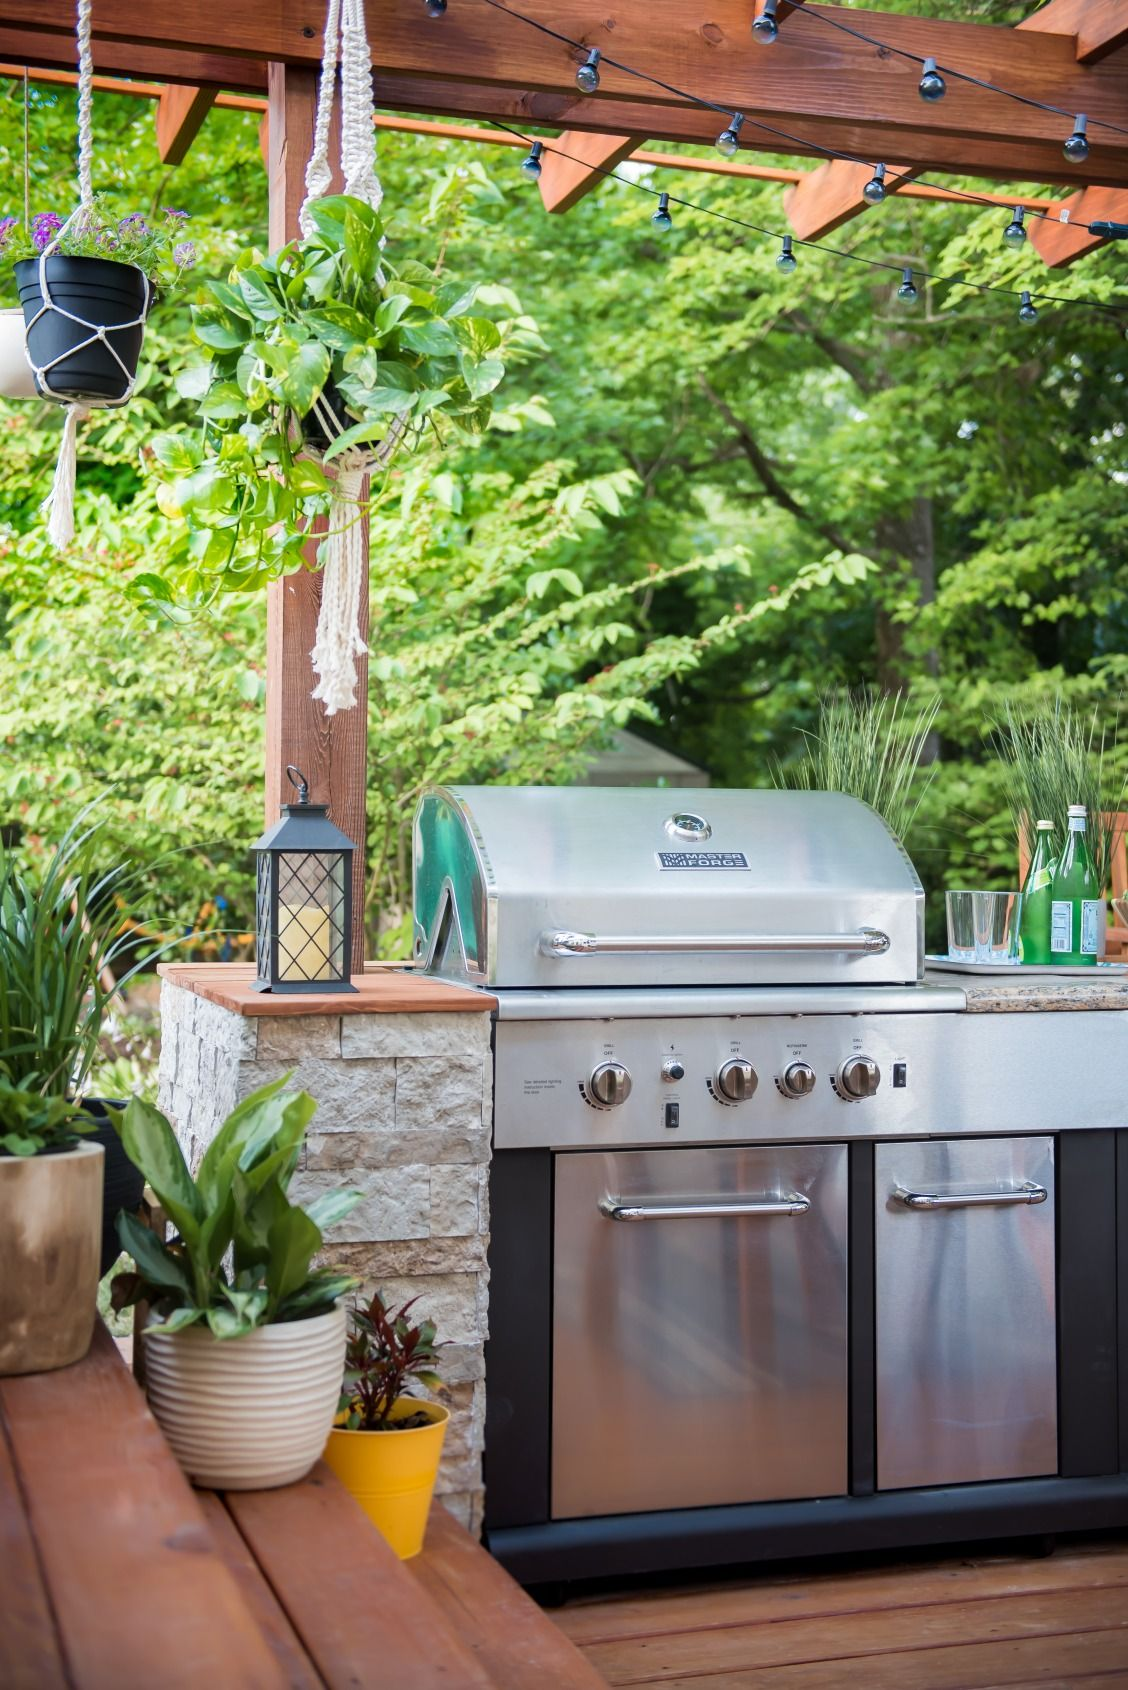 amazing outdoor kitchen you want to see diy outdoor kitchen outdoor kitchen patio kitchen on outdoor kitchen easy id=16505